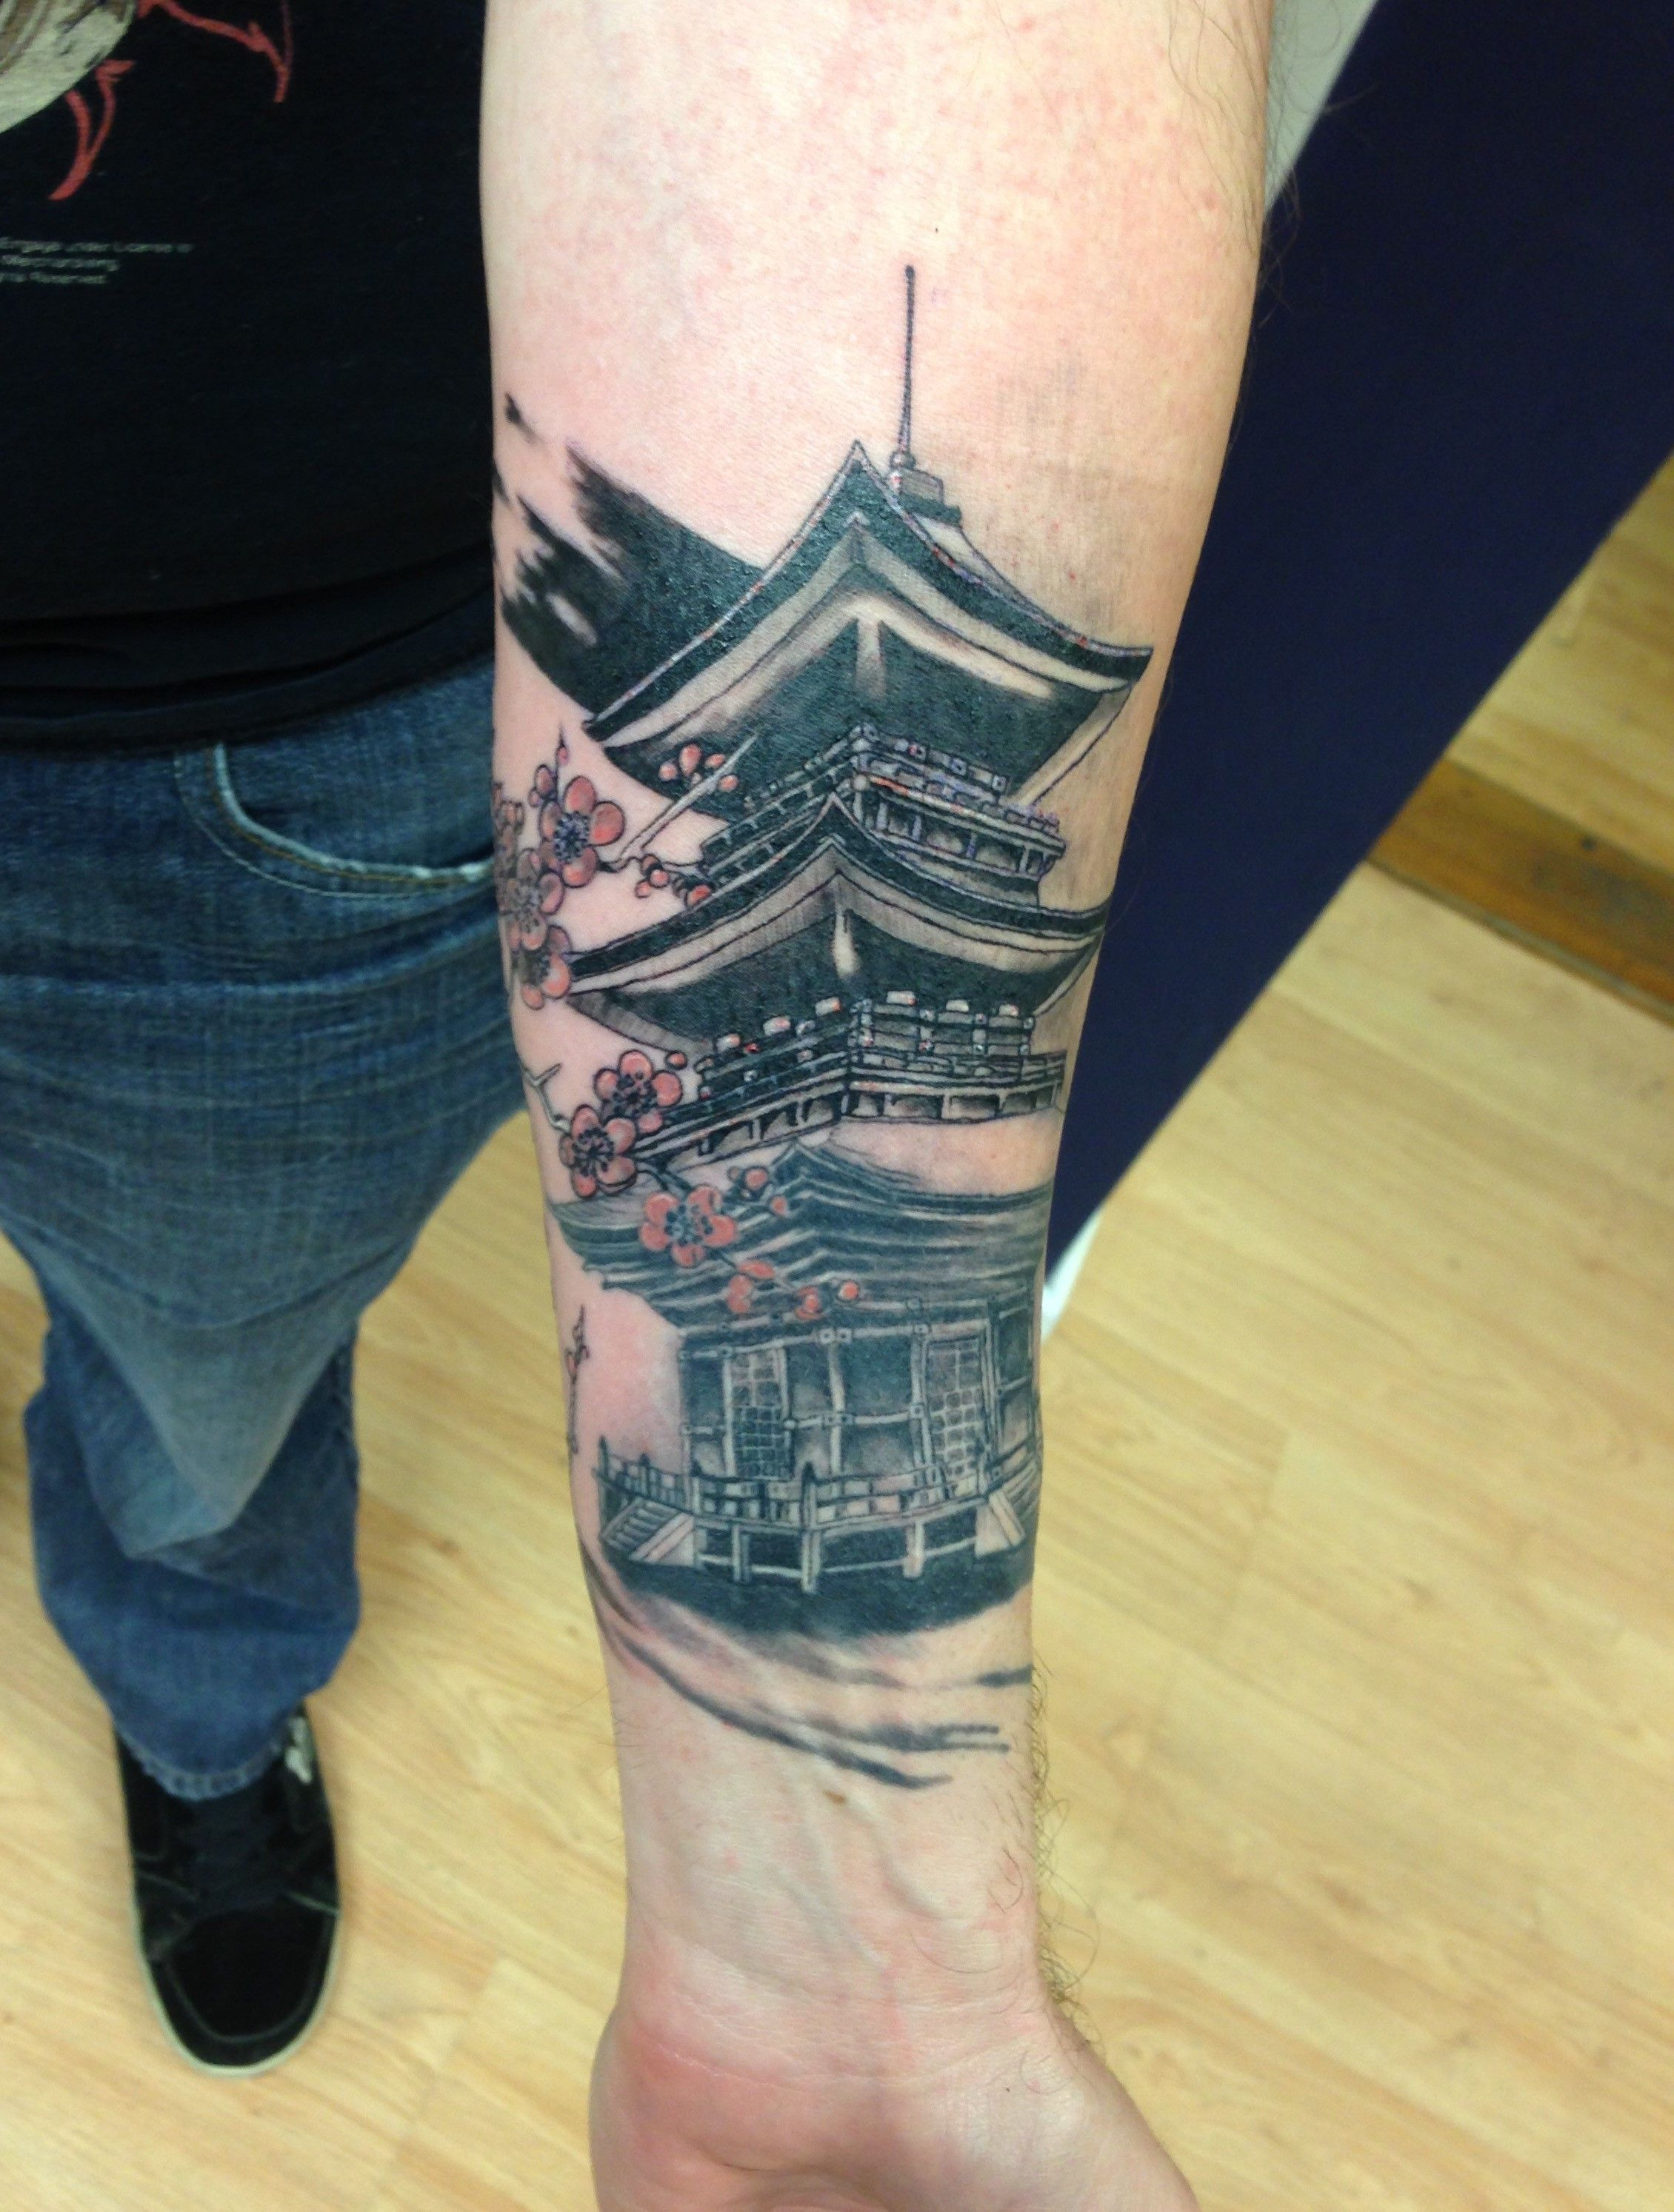 Aztec Temple Tattoo japanese temple tattoo (fresh out of the second session!)